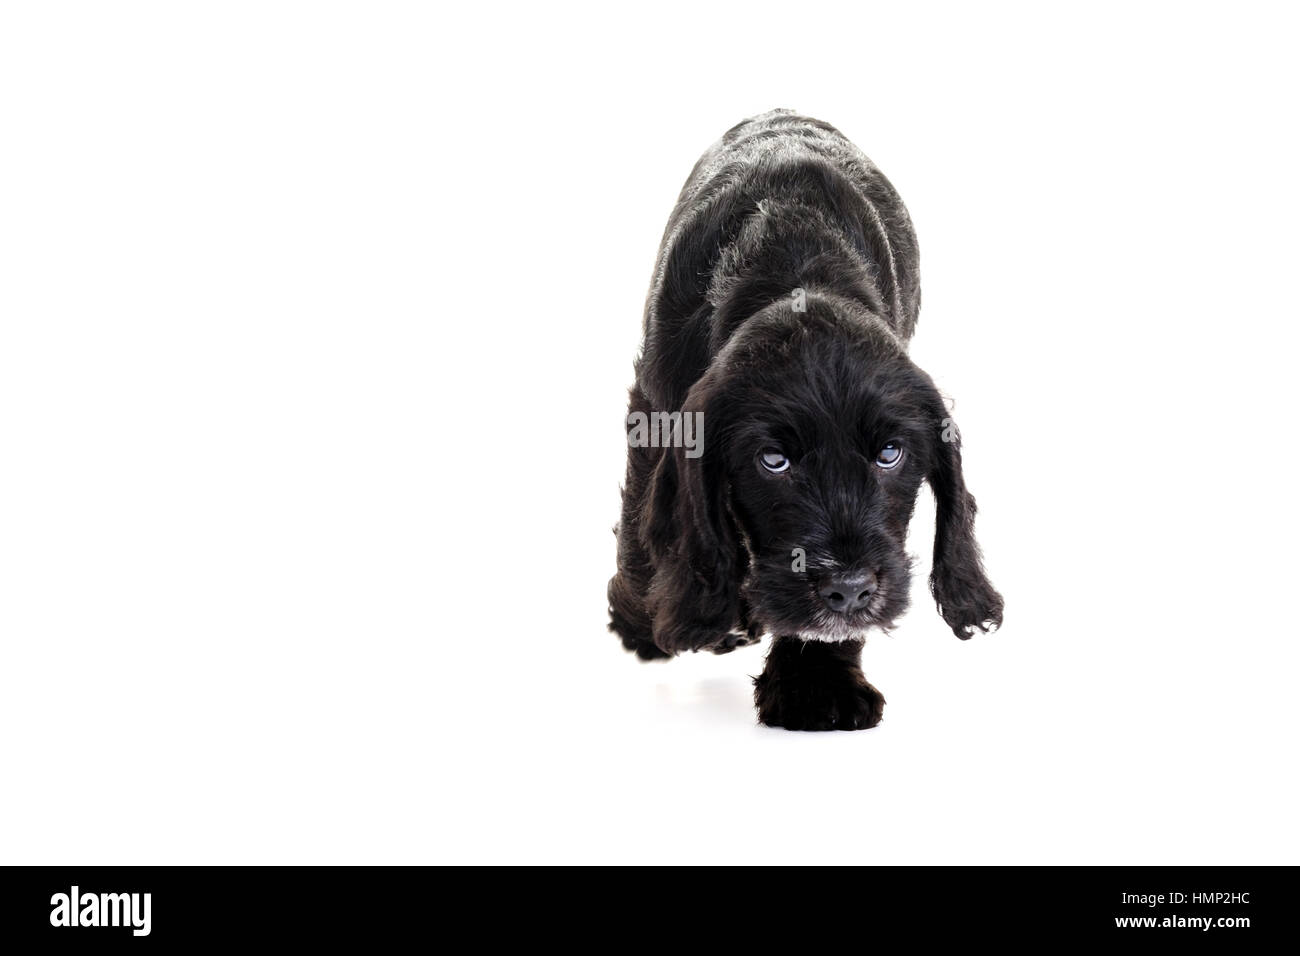 A studio shot of a cute Cockapoo, eight week old puppy taken against a plain white background - Stock Image